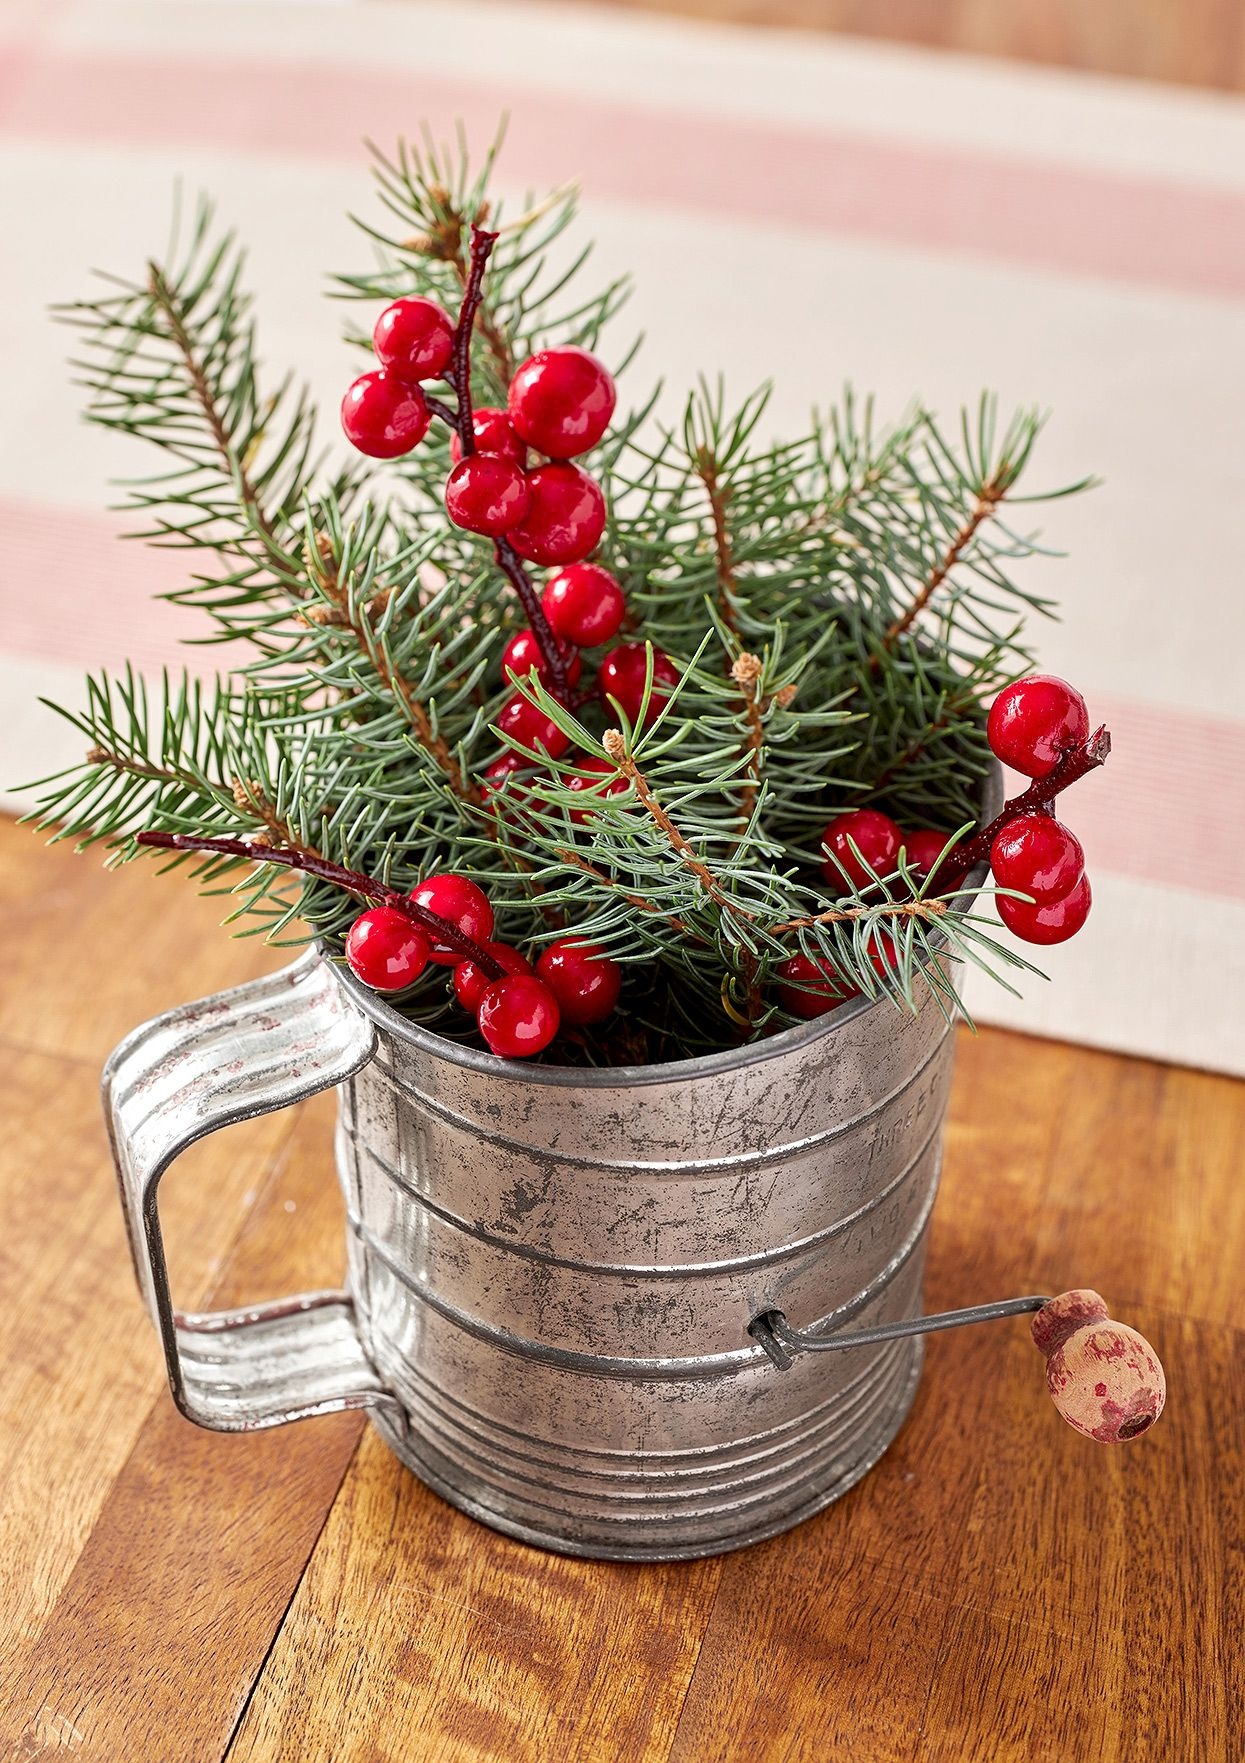 22 Gorgeous Farmhouse Christmas Crafts to Make This Holiday